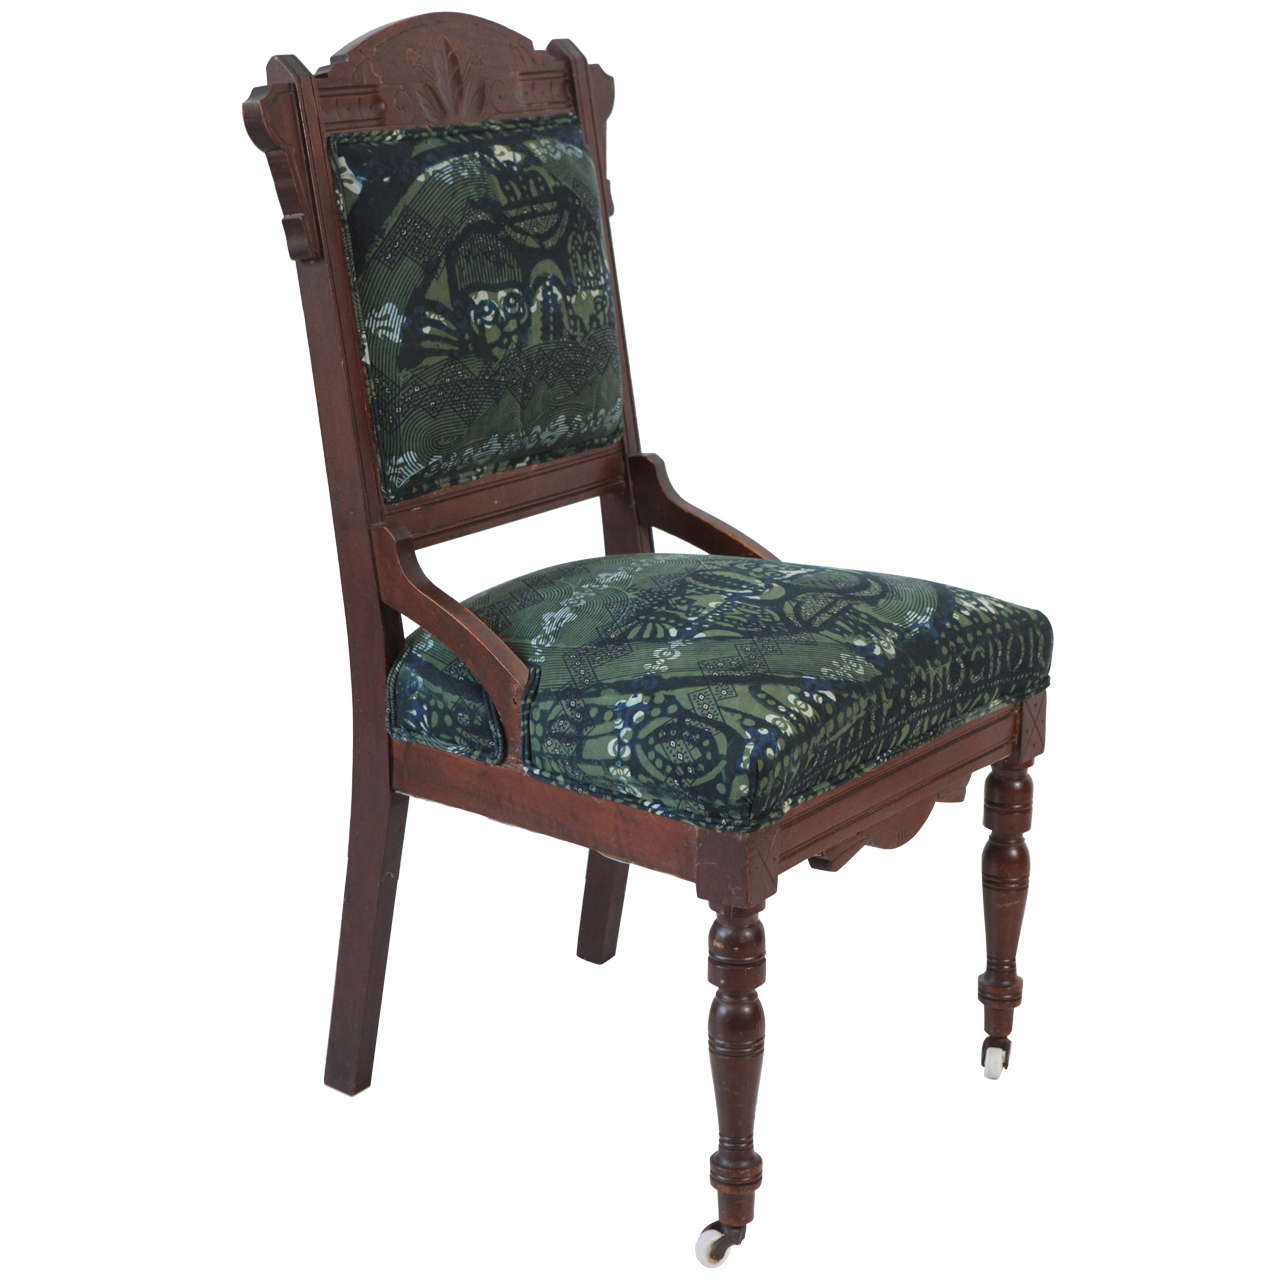 Vintage eastlake chair upholstered in african print fabric